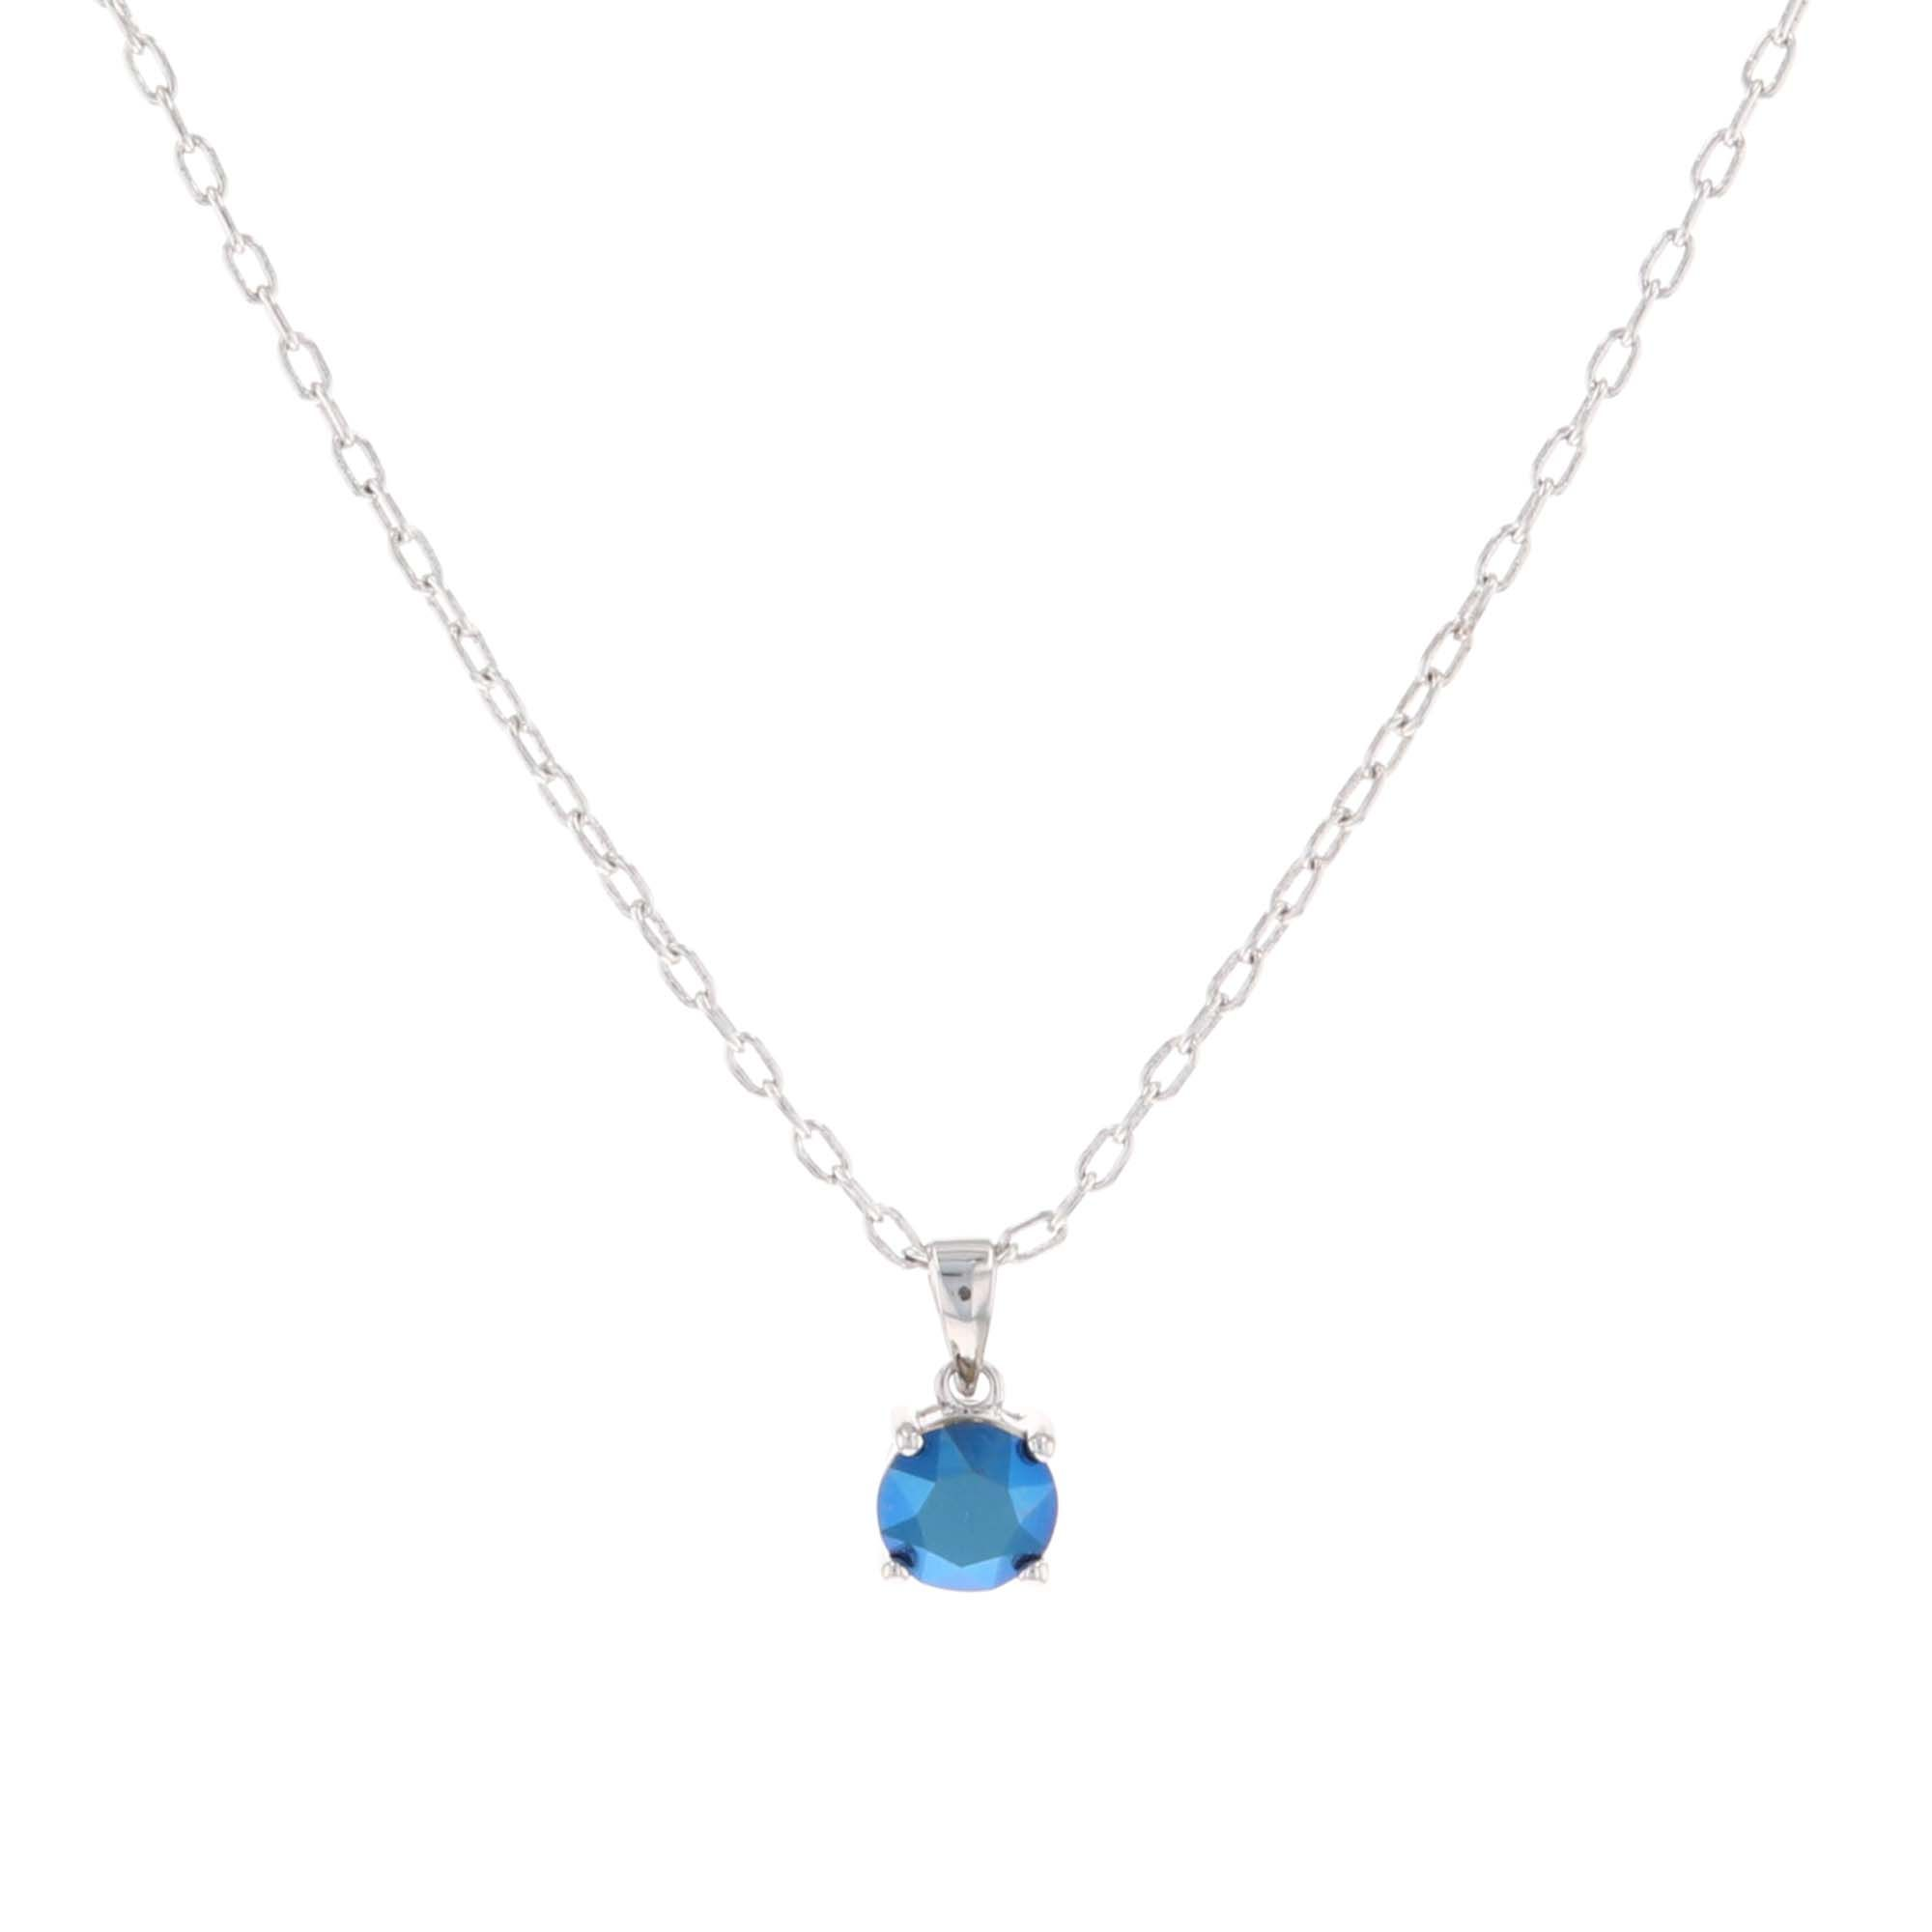 Cerulean Lights Necklace